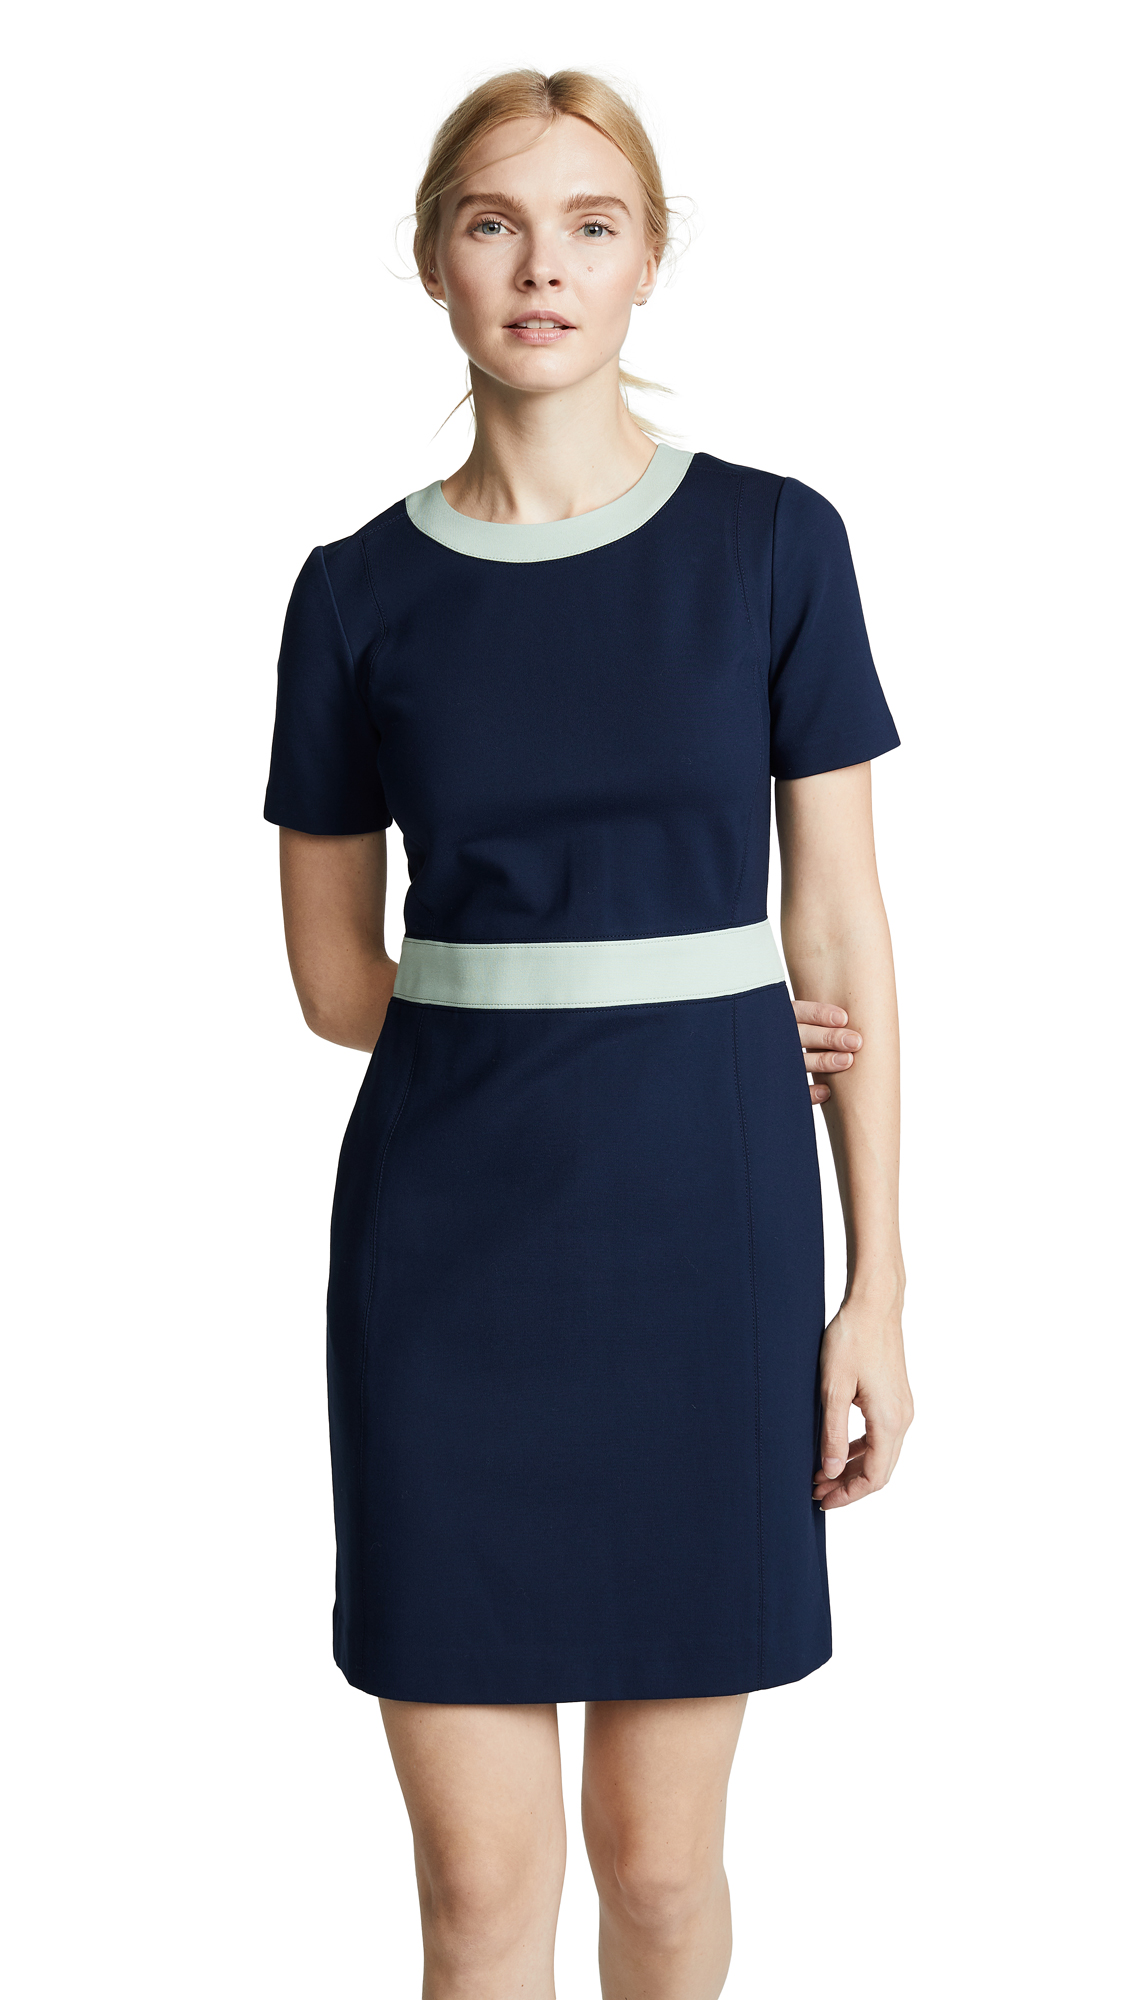 Tory Burch Ponte Colorblock Dress - Navy/Mint